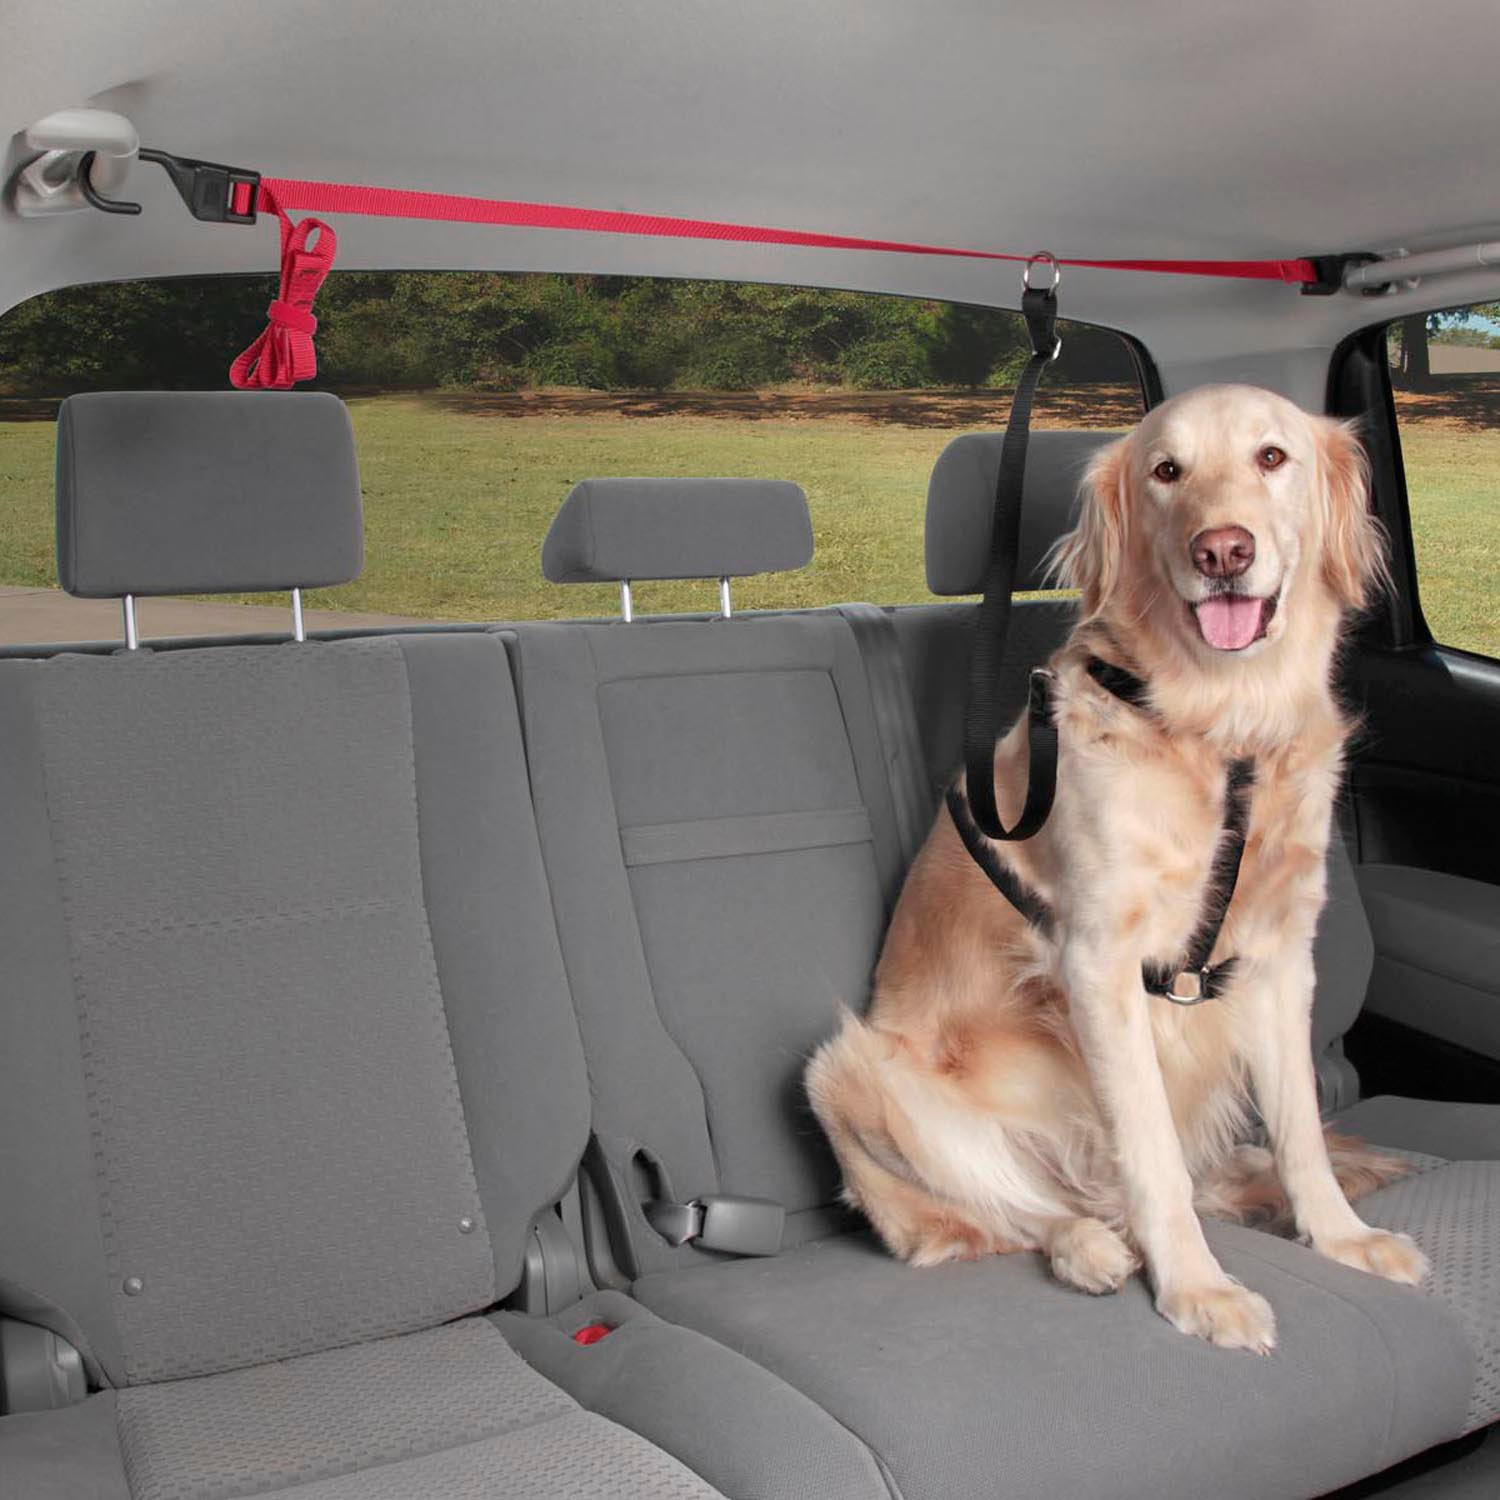 solvit pup zip zipline dog seat belt petco. Black Bedroom Furniture Sets. Home Design Ideas